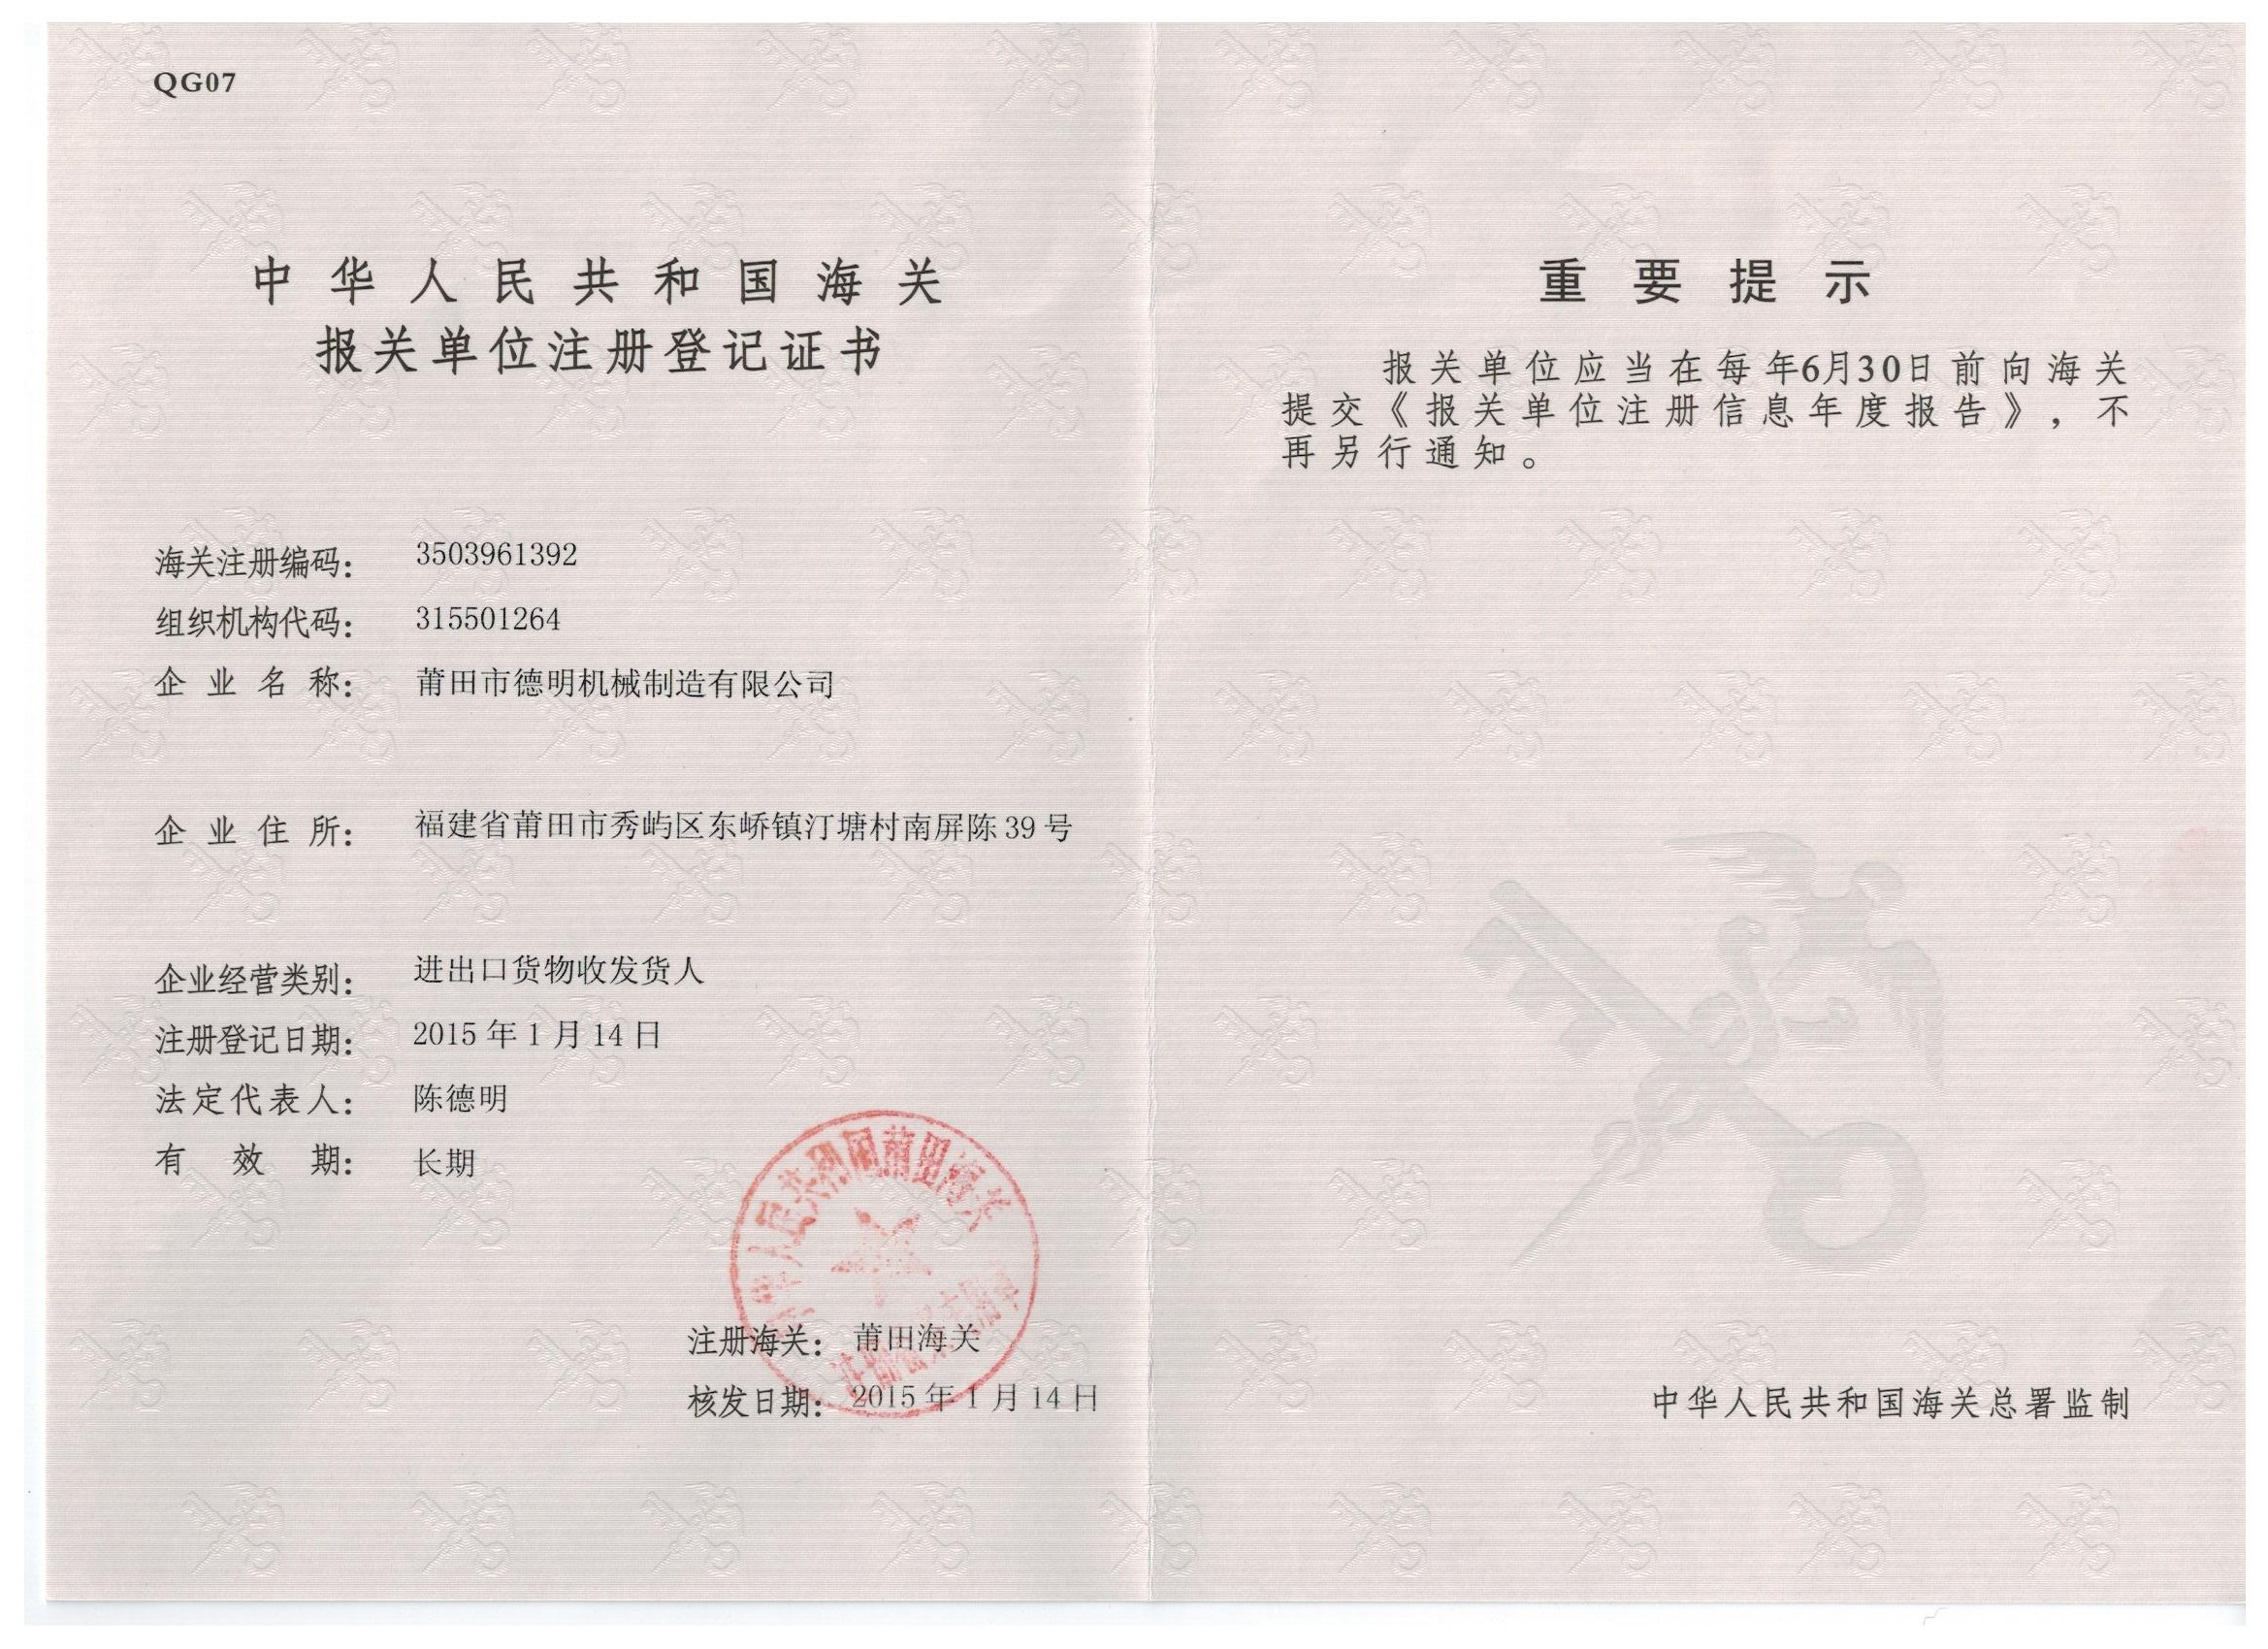 The customs of the People's Republic of China Customs registration certificate